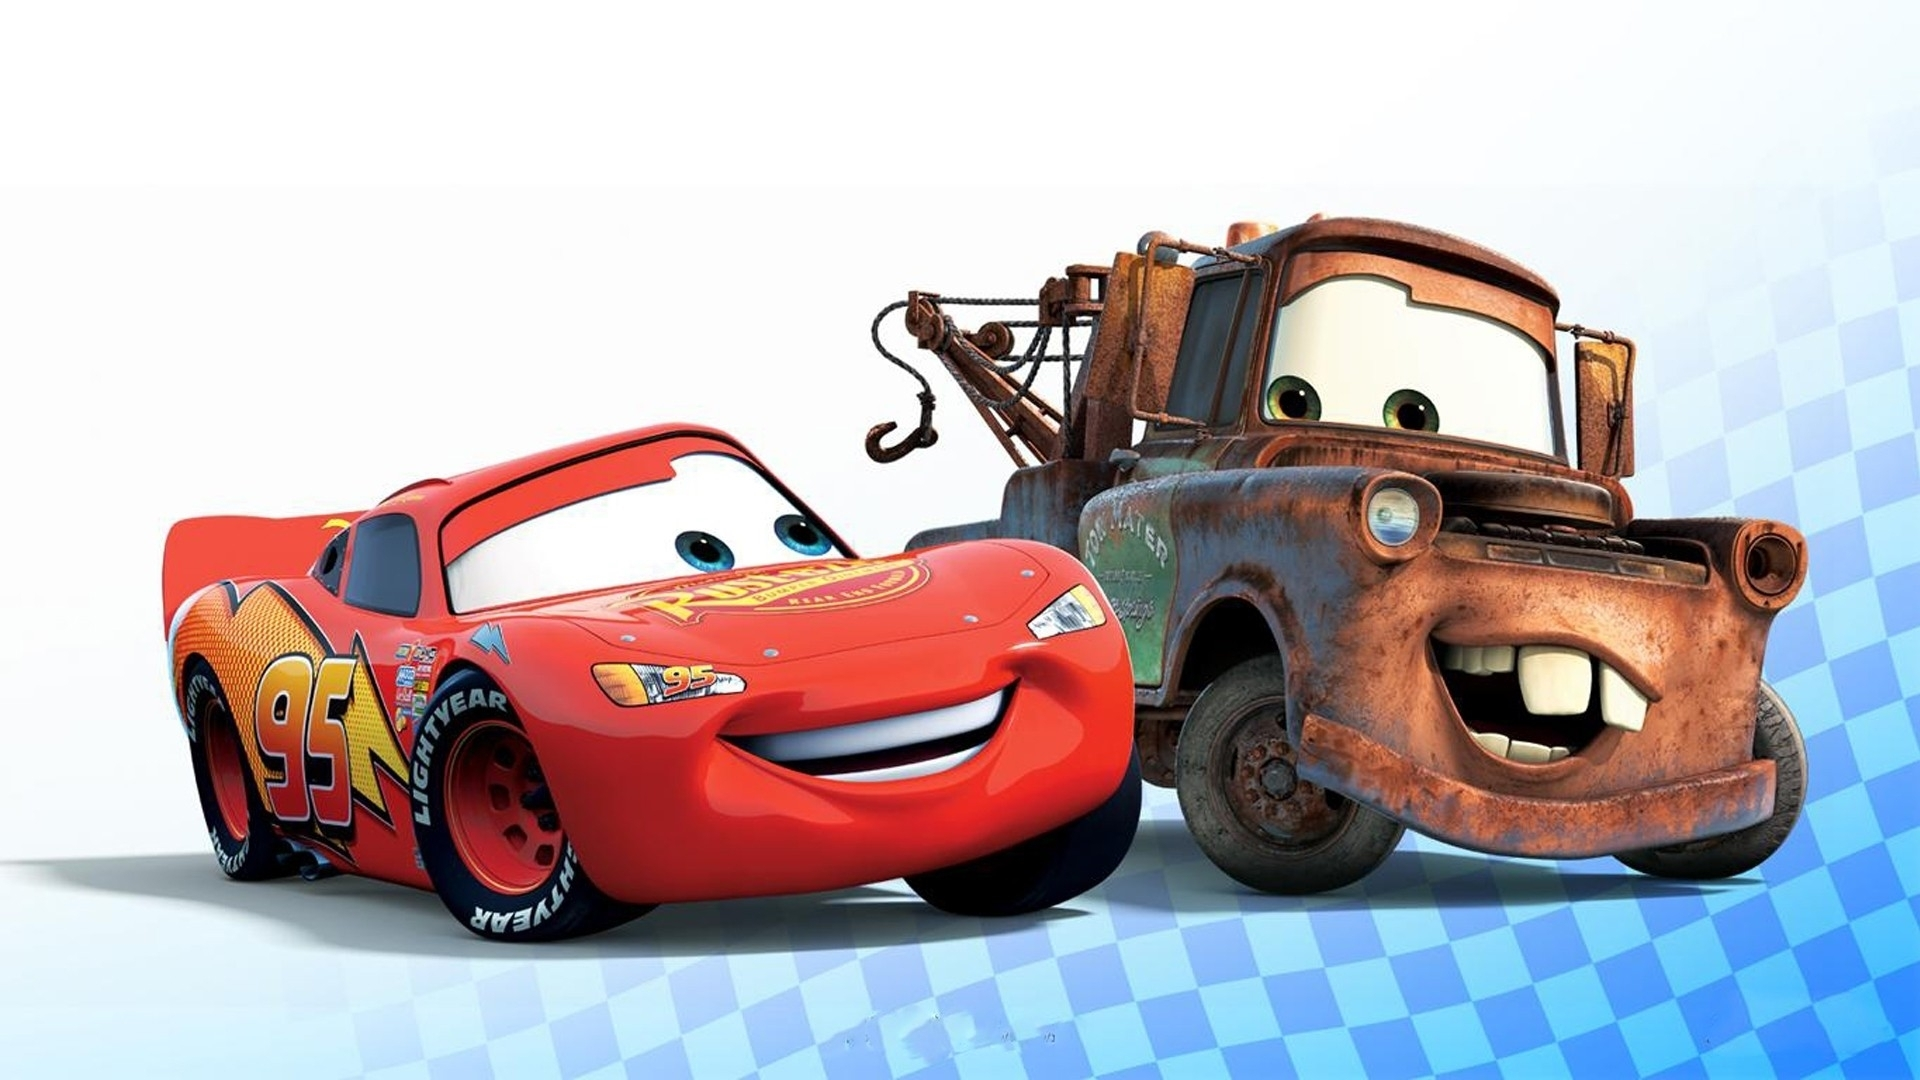 disney cars free hd desktop backfround wallpaper